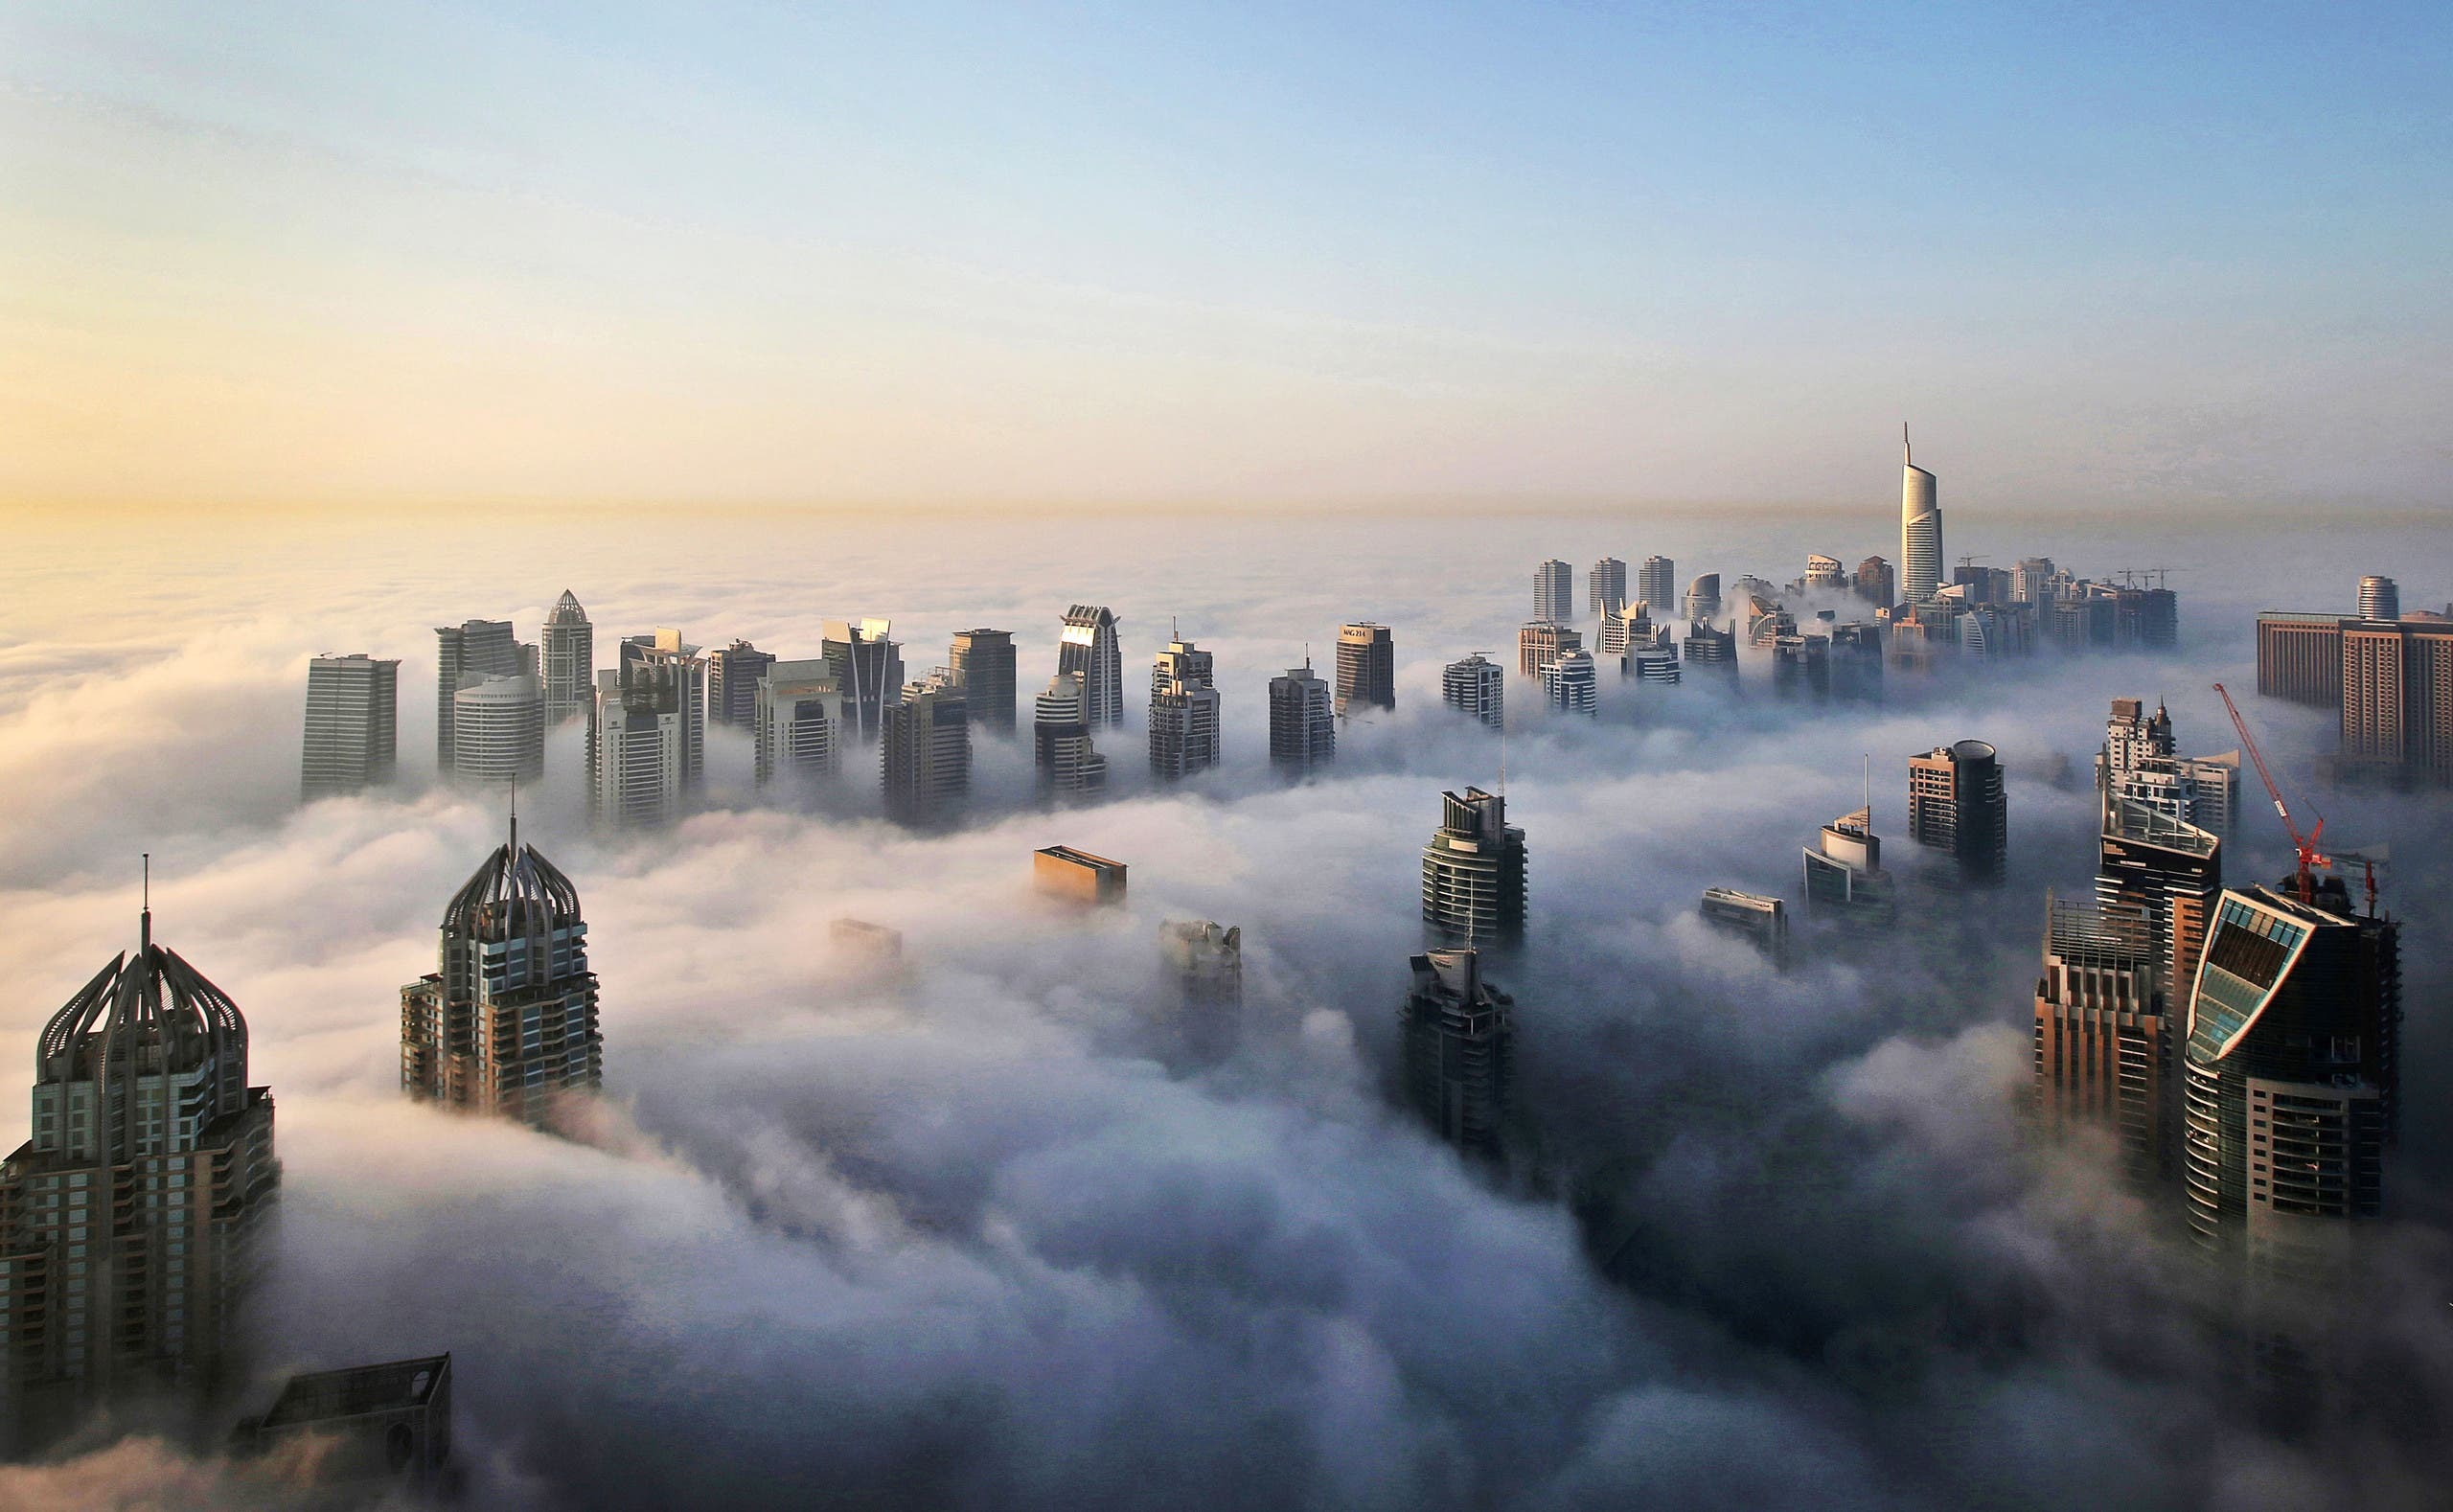 In this Monday, Oct. 5, 2015 photo, a thick blanket of early morning fog partially shrouds the skyscrapers of the Marina and Jumeirah Lake Towers districts of Dubai, United Arab Emirates. (AP)